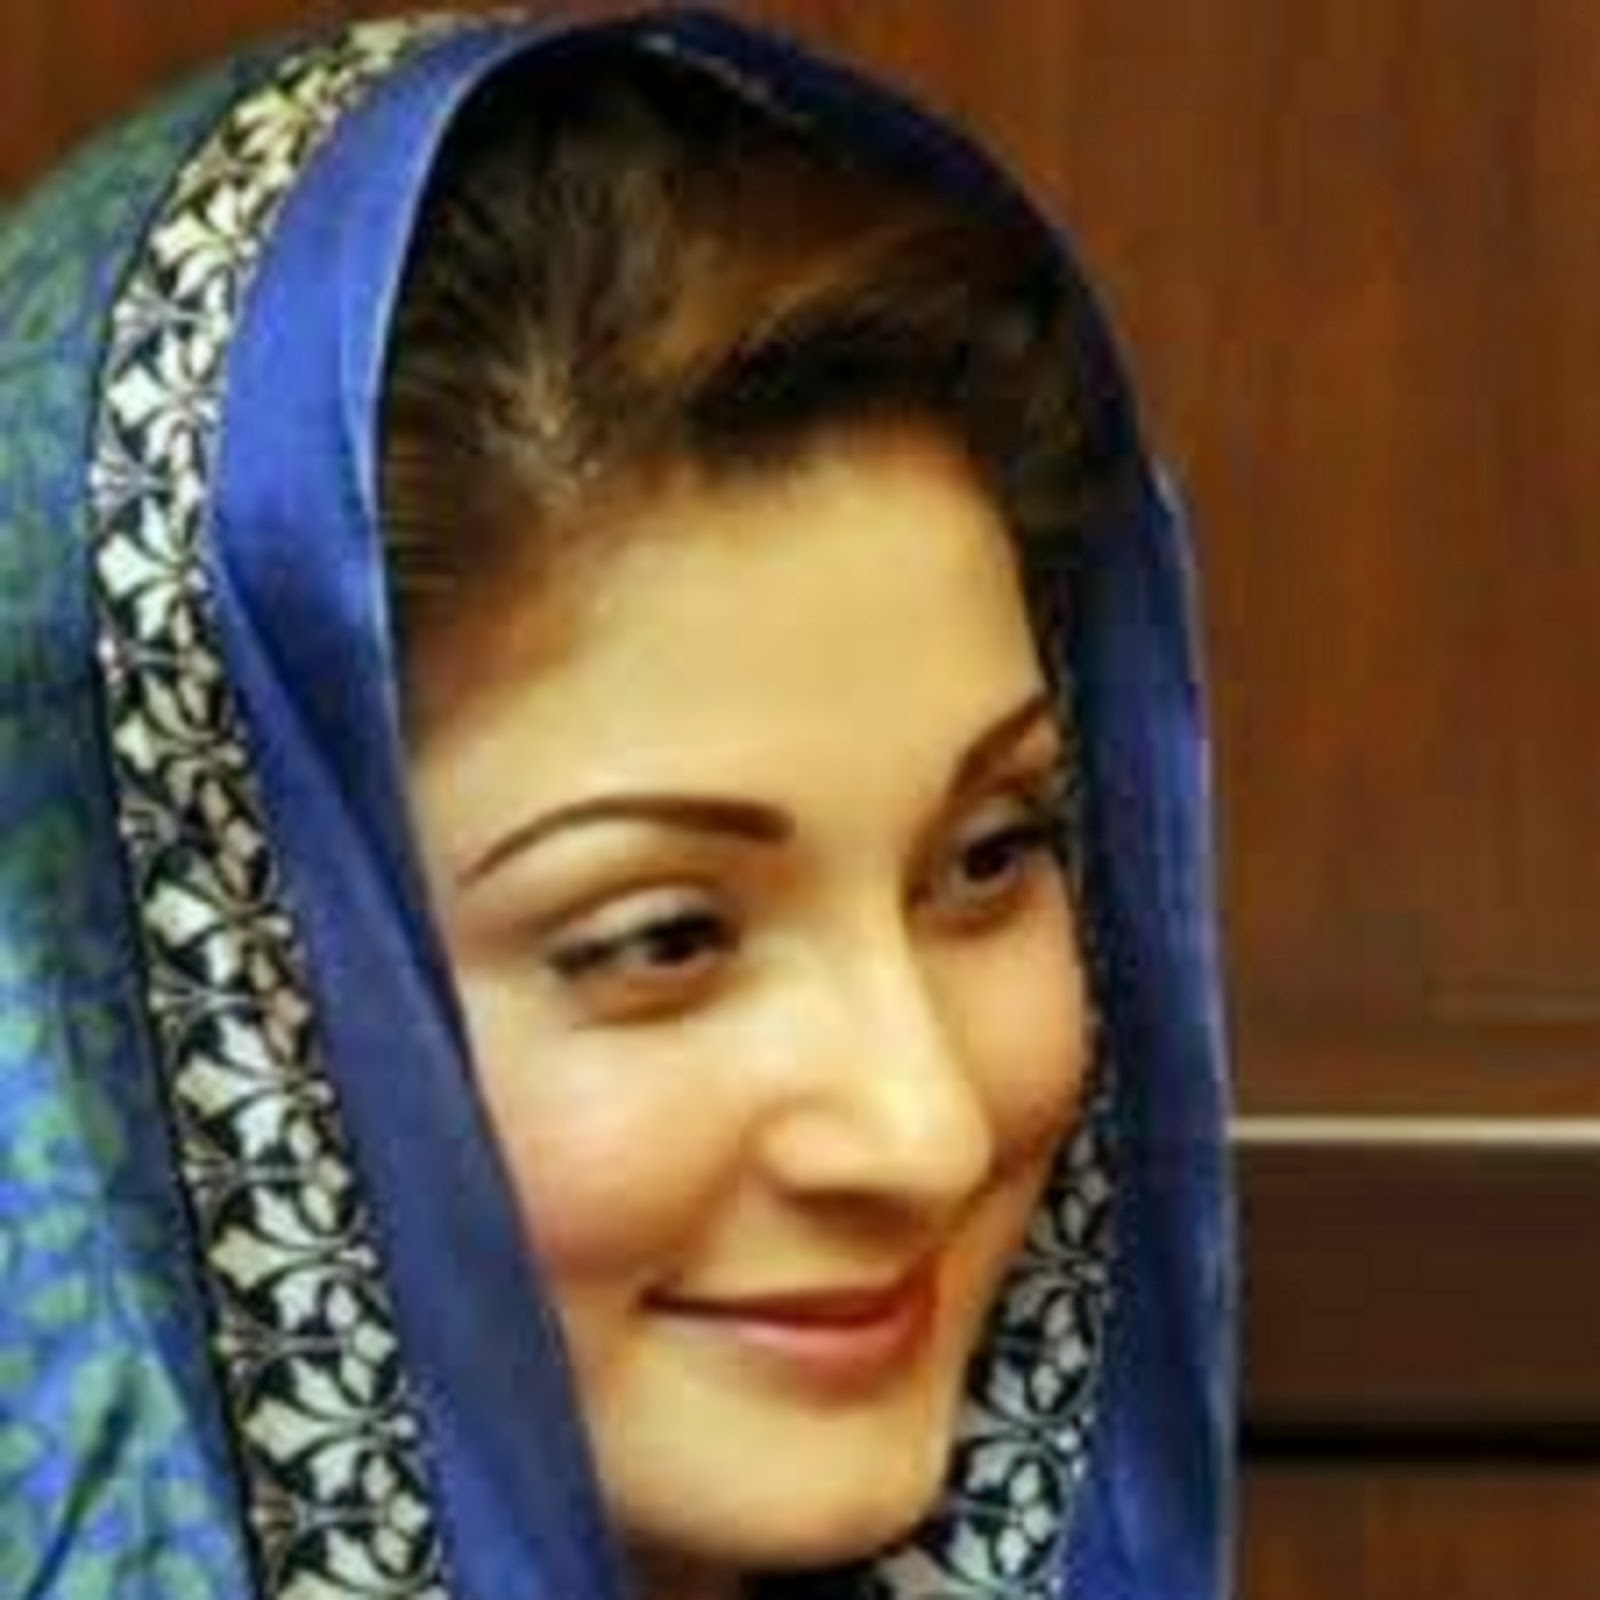 Maryam nawaz hot video